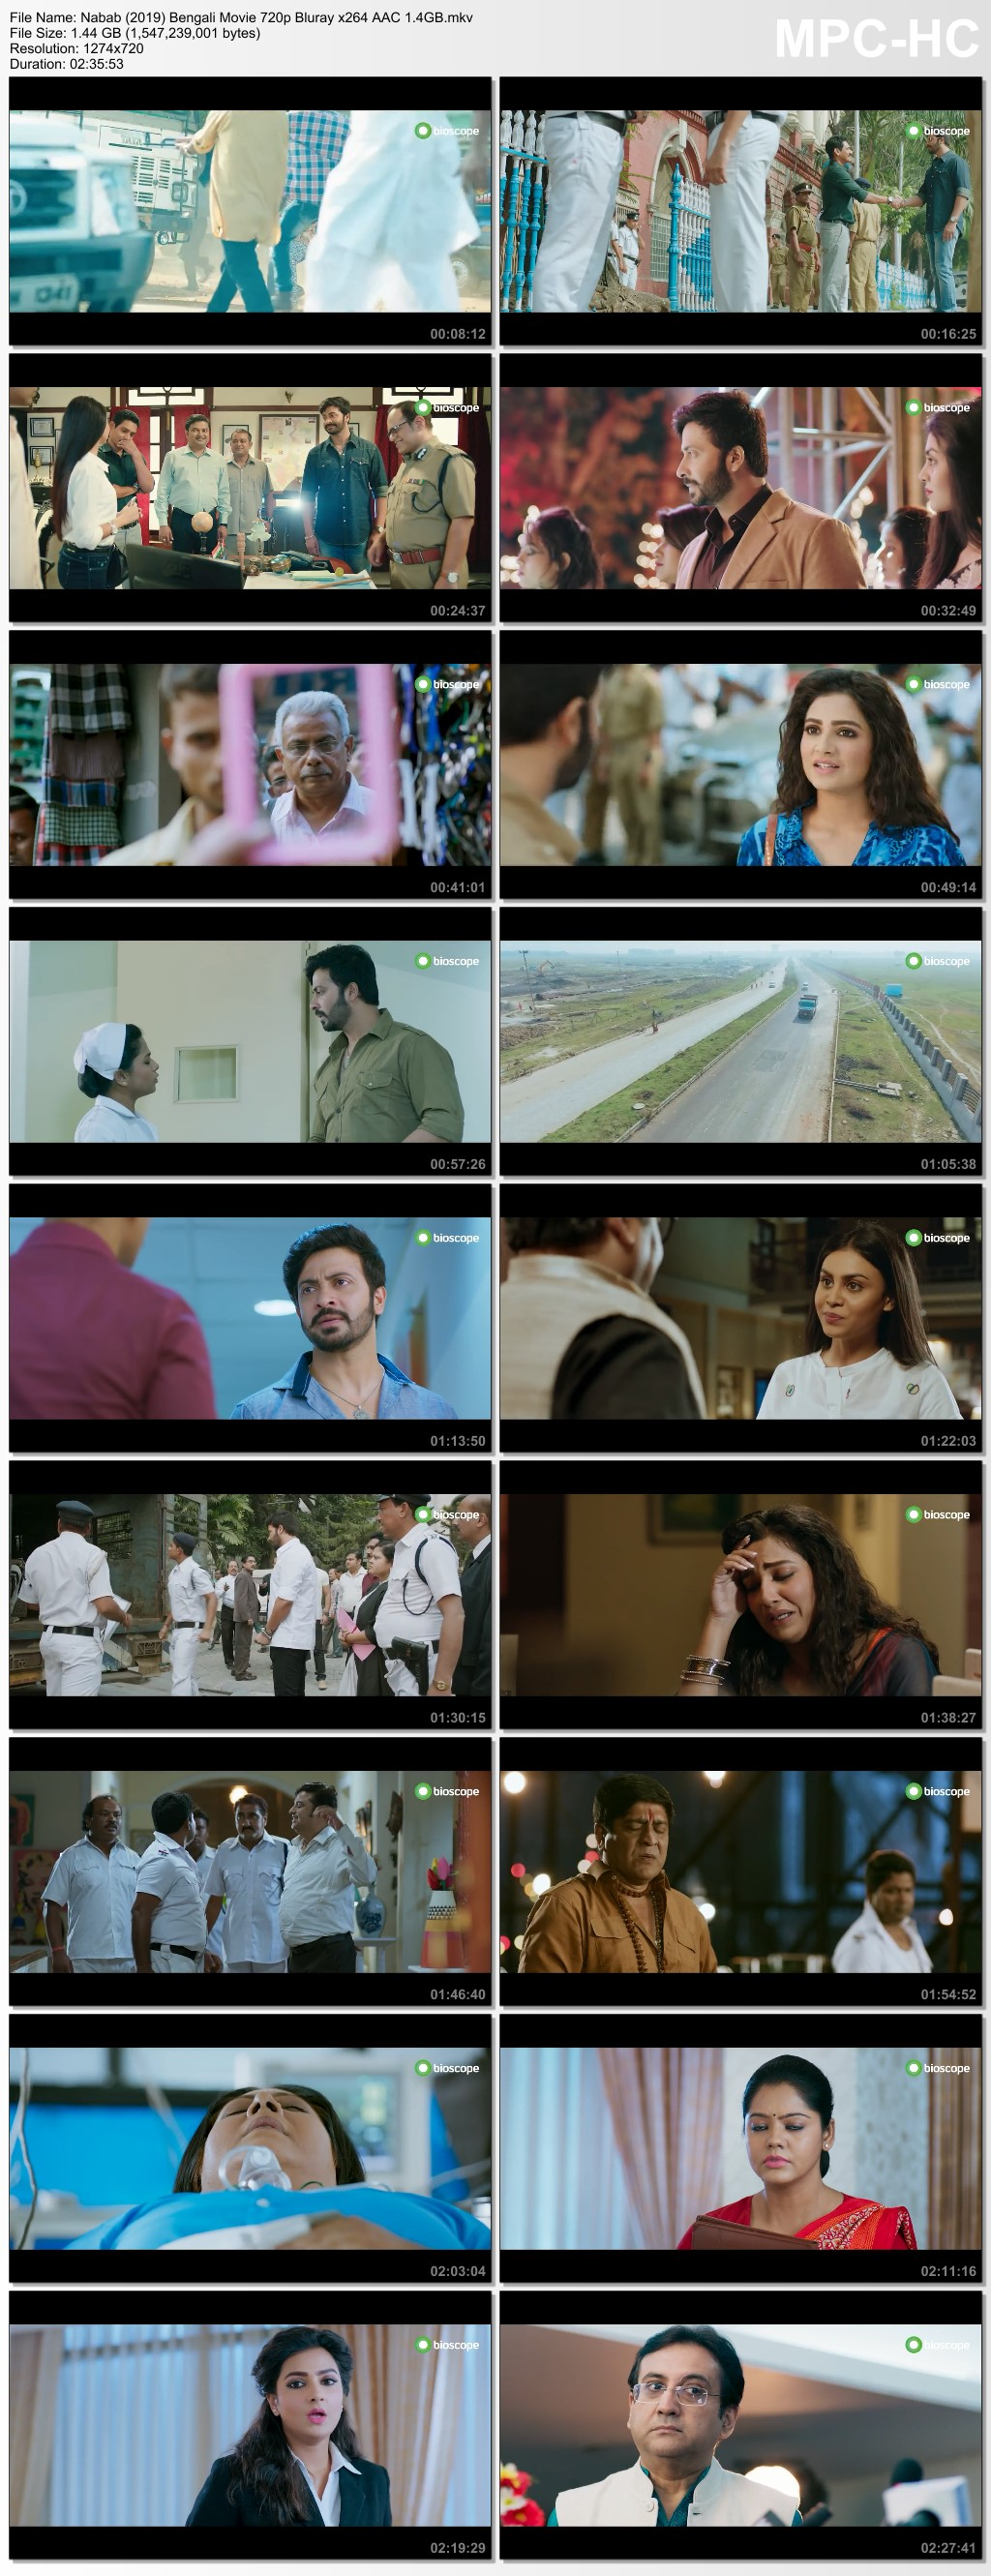 Nabab2019BengaliMovie720pBlurayx264AAC1.4GB.mkv_thumbs_2020.04.22_15.24.05f721e.jpg